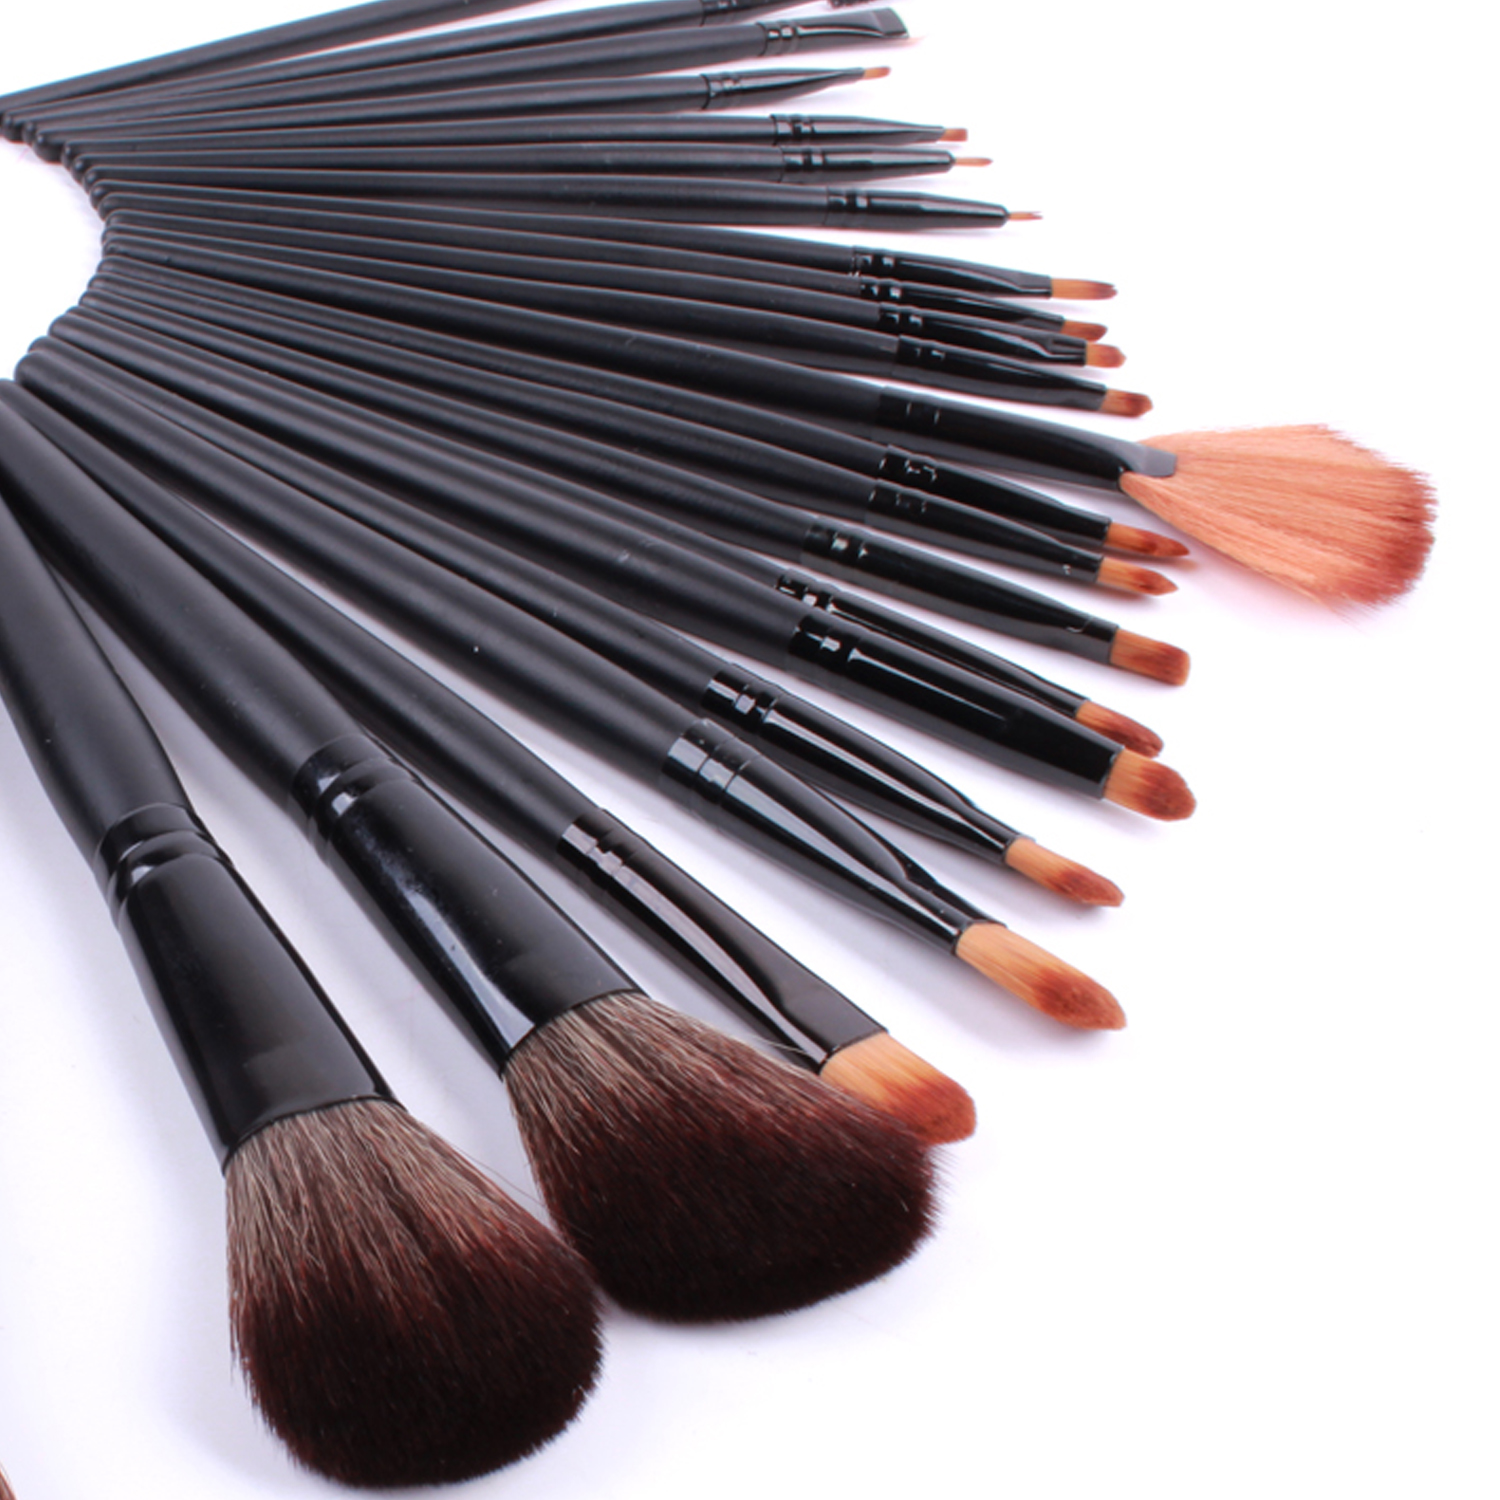 Lexni 24 special fiber hair makeup brush set makeup tools makeup brush sets studio star